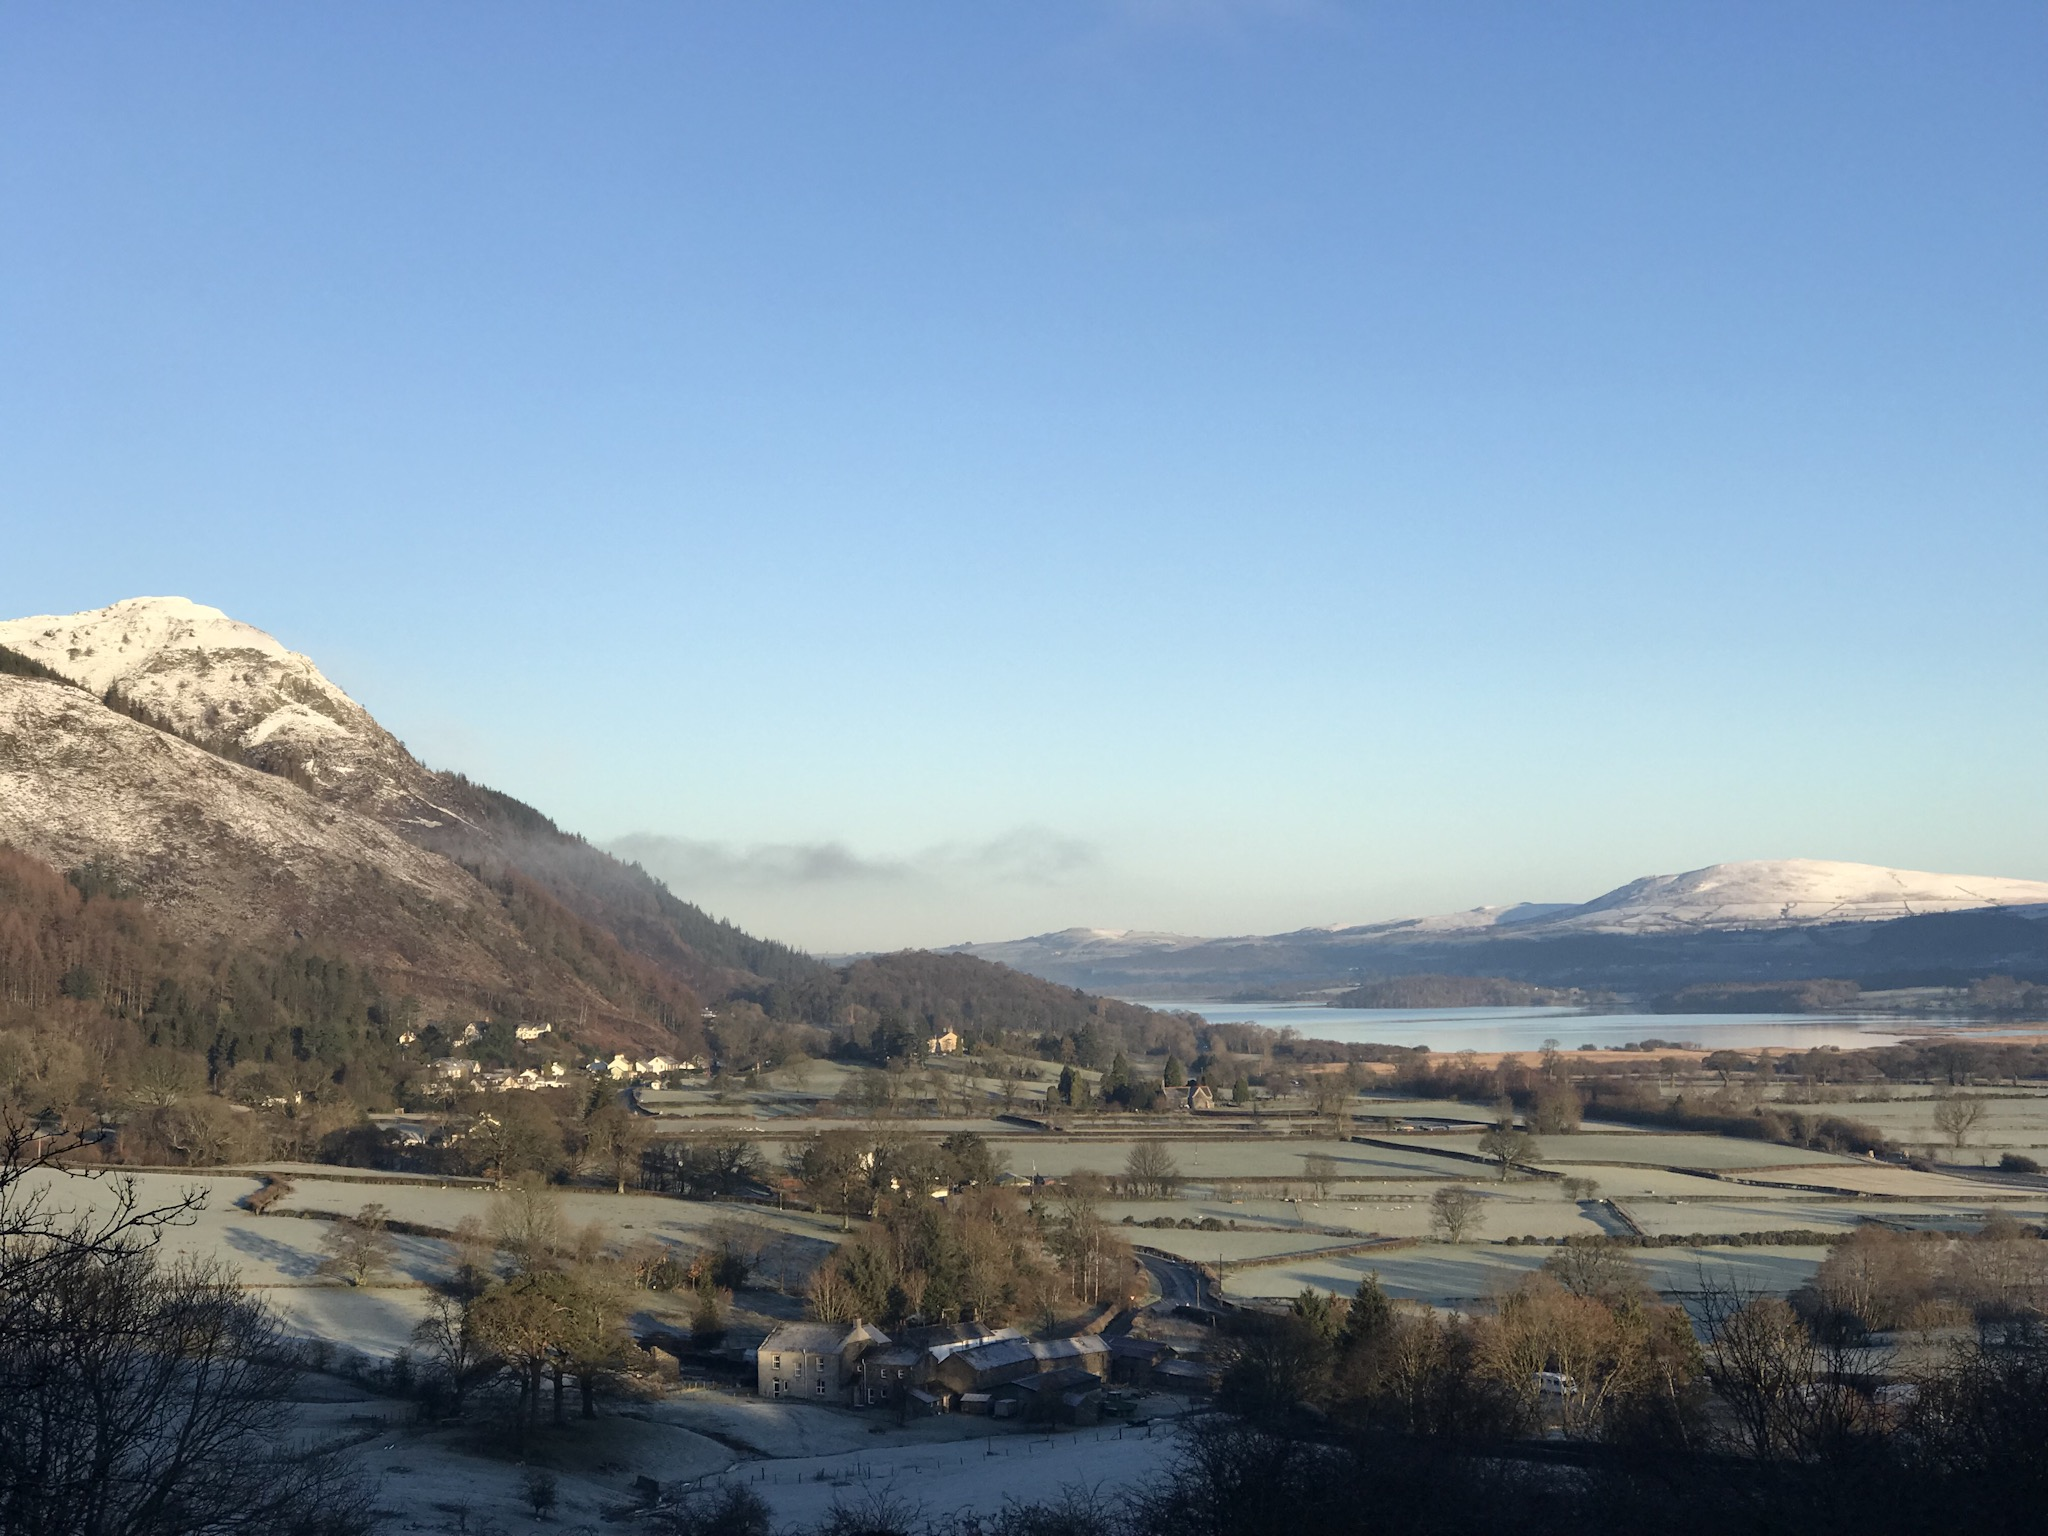 View of Barf and Bassenthwaite Lake